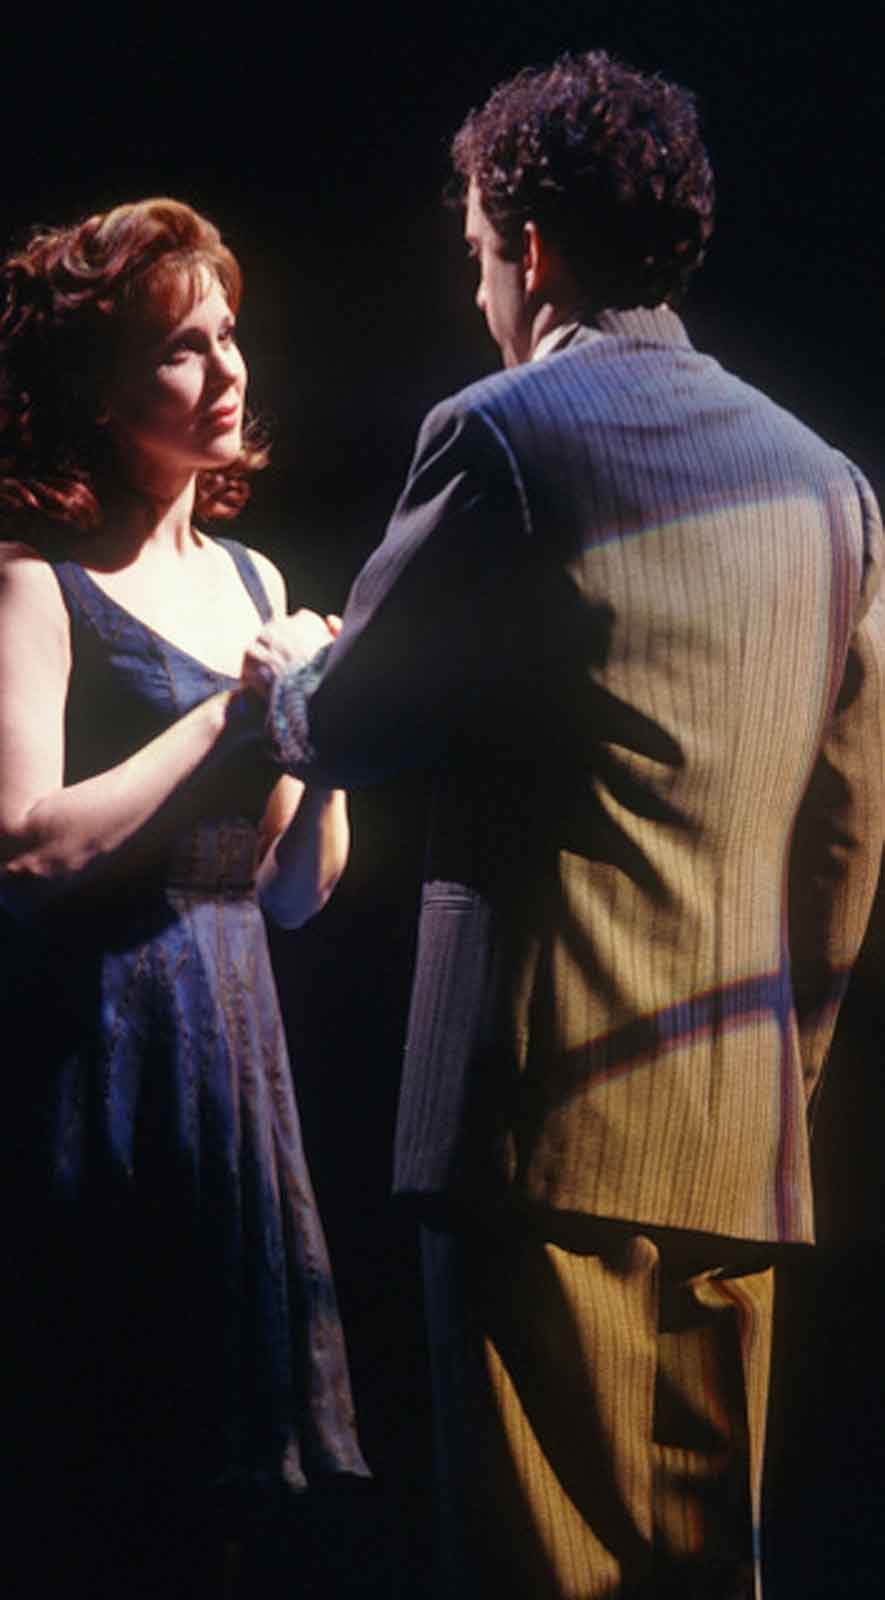 Susan (Christa Moore) and Josh (Daniel Jenkins) in Big. They stand facing each other. There is romance and energy.